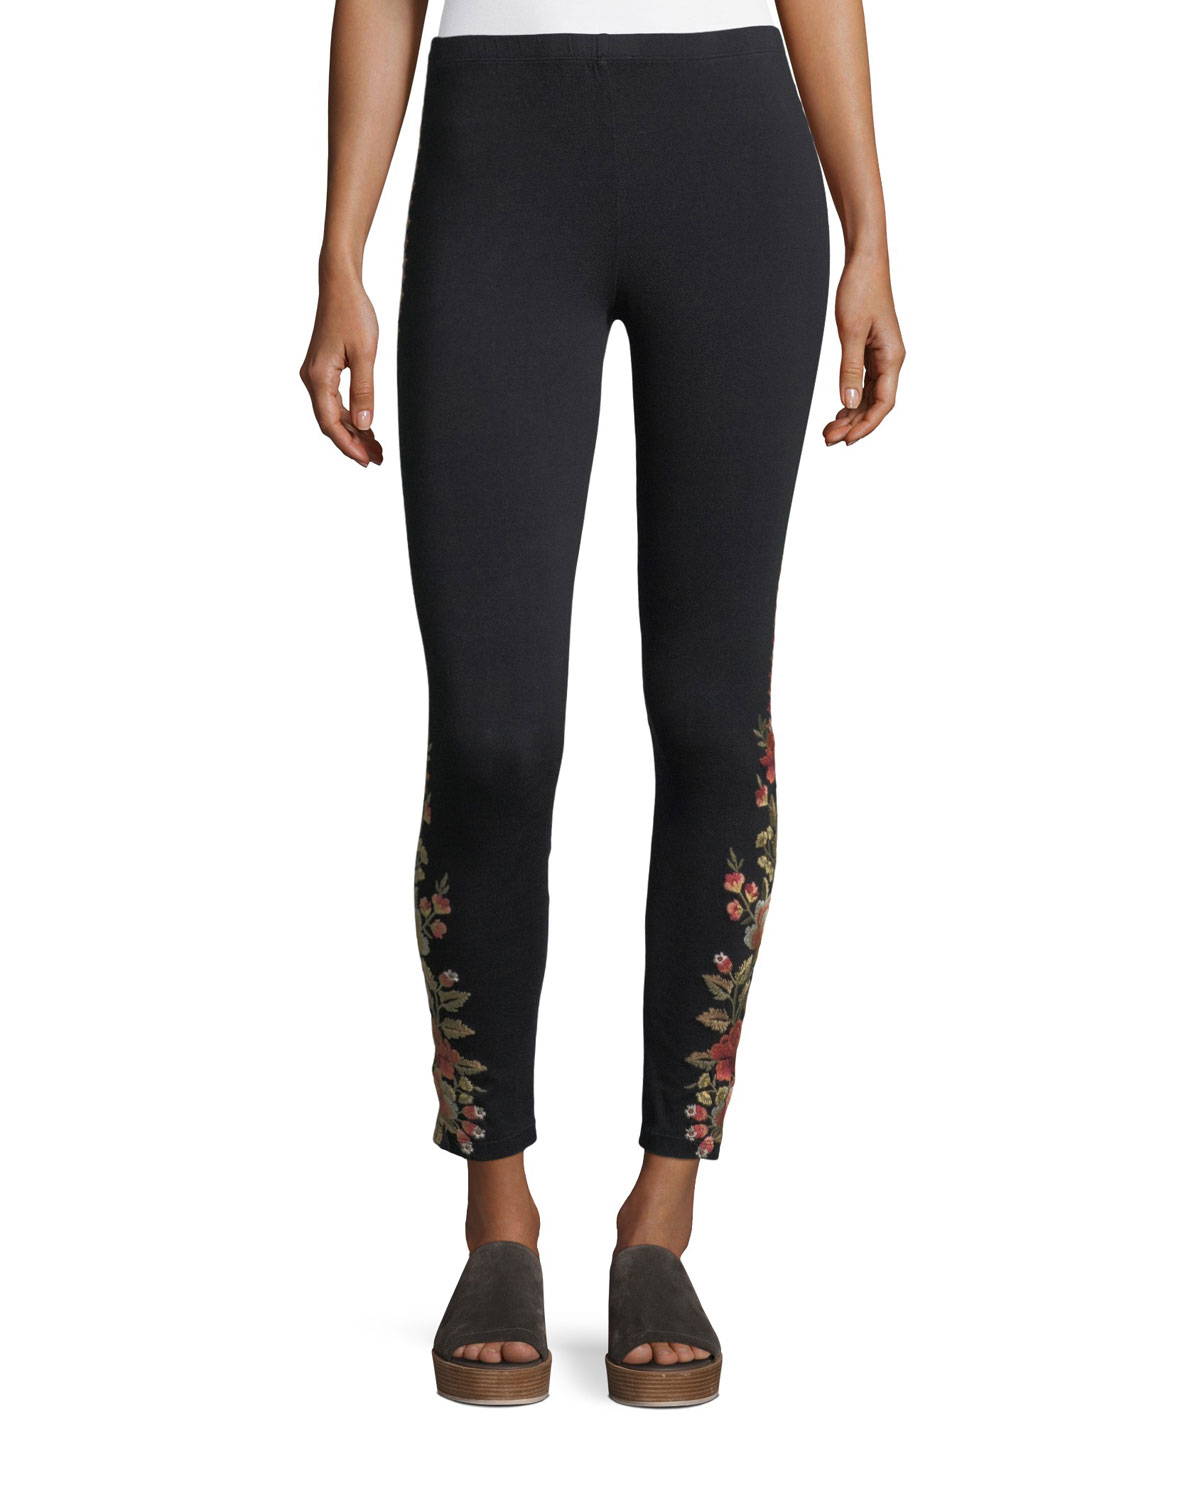 ddf45383d7 Black Stretch Leggings | Neiman Marcus